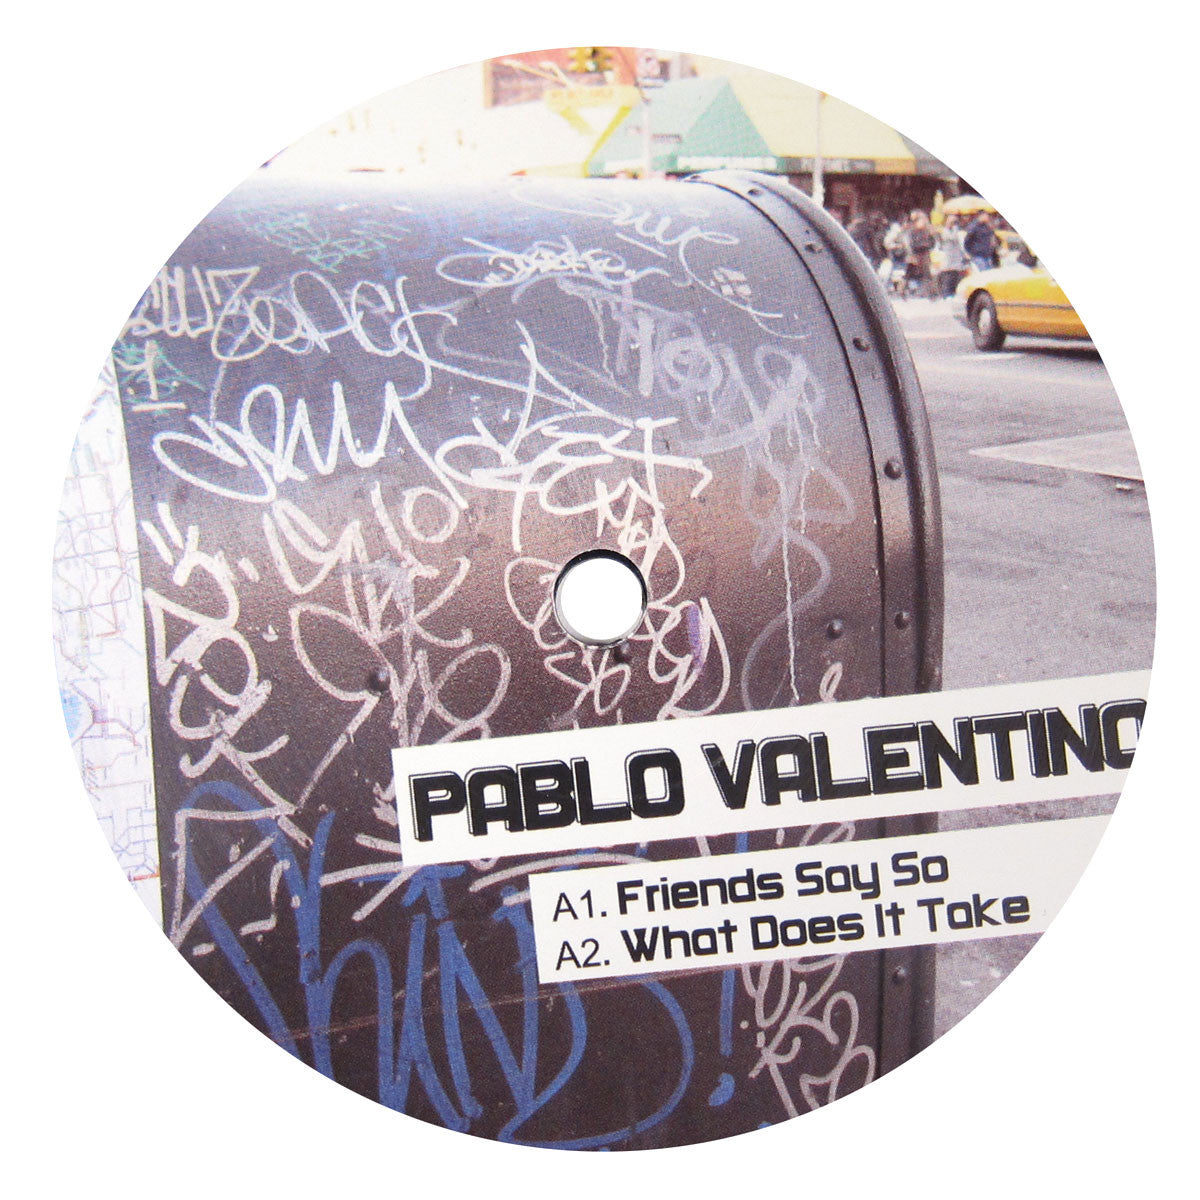 Pablo Valentino: Friends Say So (Kez YM) 12""